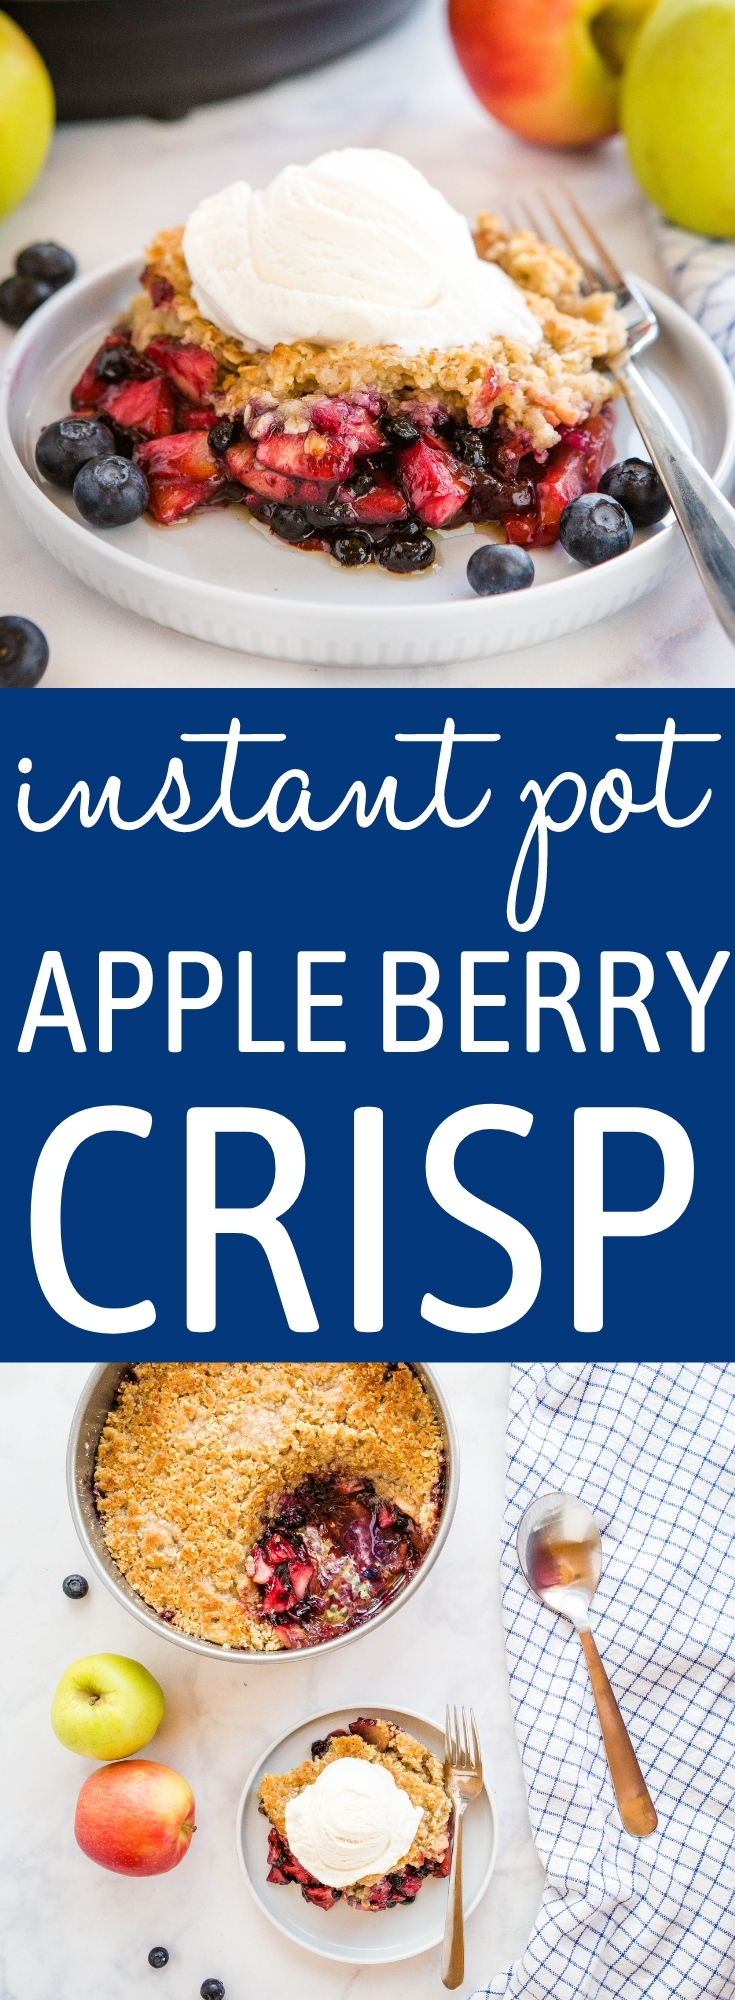 This Instant Pot Apple Crisp with Berries is the perfect simple dessert made with fresh apples, berries, and a few basic pantry ingredients - made quick and easy in the Instant Pot! Recipe from thebusybaker.ca! #applecrisp #berries #summer #dessert #easydessert #baking #InstantPot #instantpotbaking #pressurecooker #instantpotdessert #fruit #glutenfreedessert #glutenfree via @busybakerblog